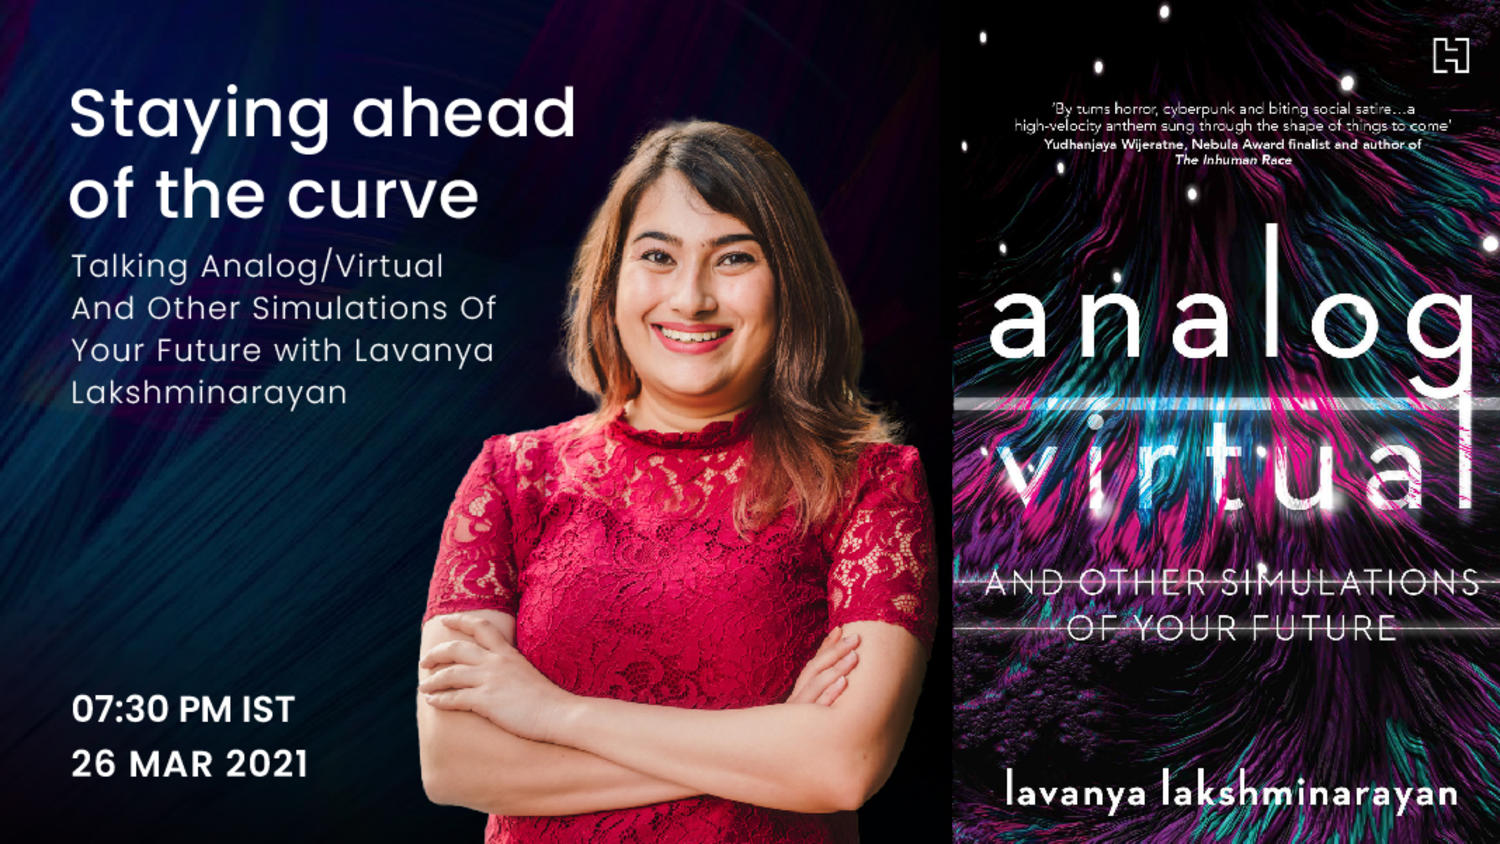 Staying ahead of the curve: talking analog/virtual and other simulations of your future with Lavanya Lakshminarayan